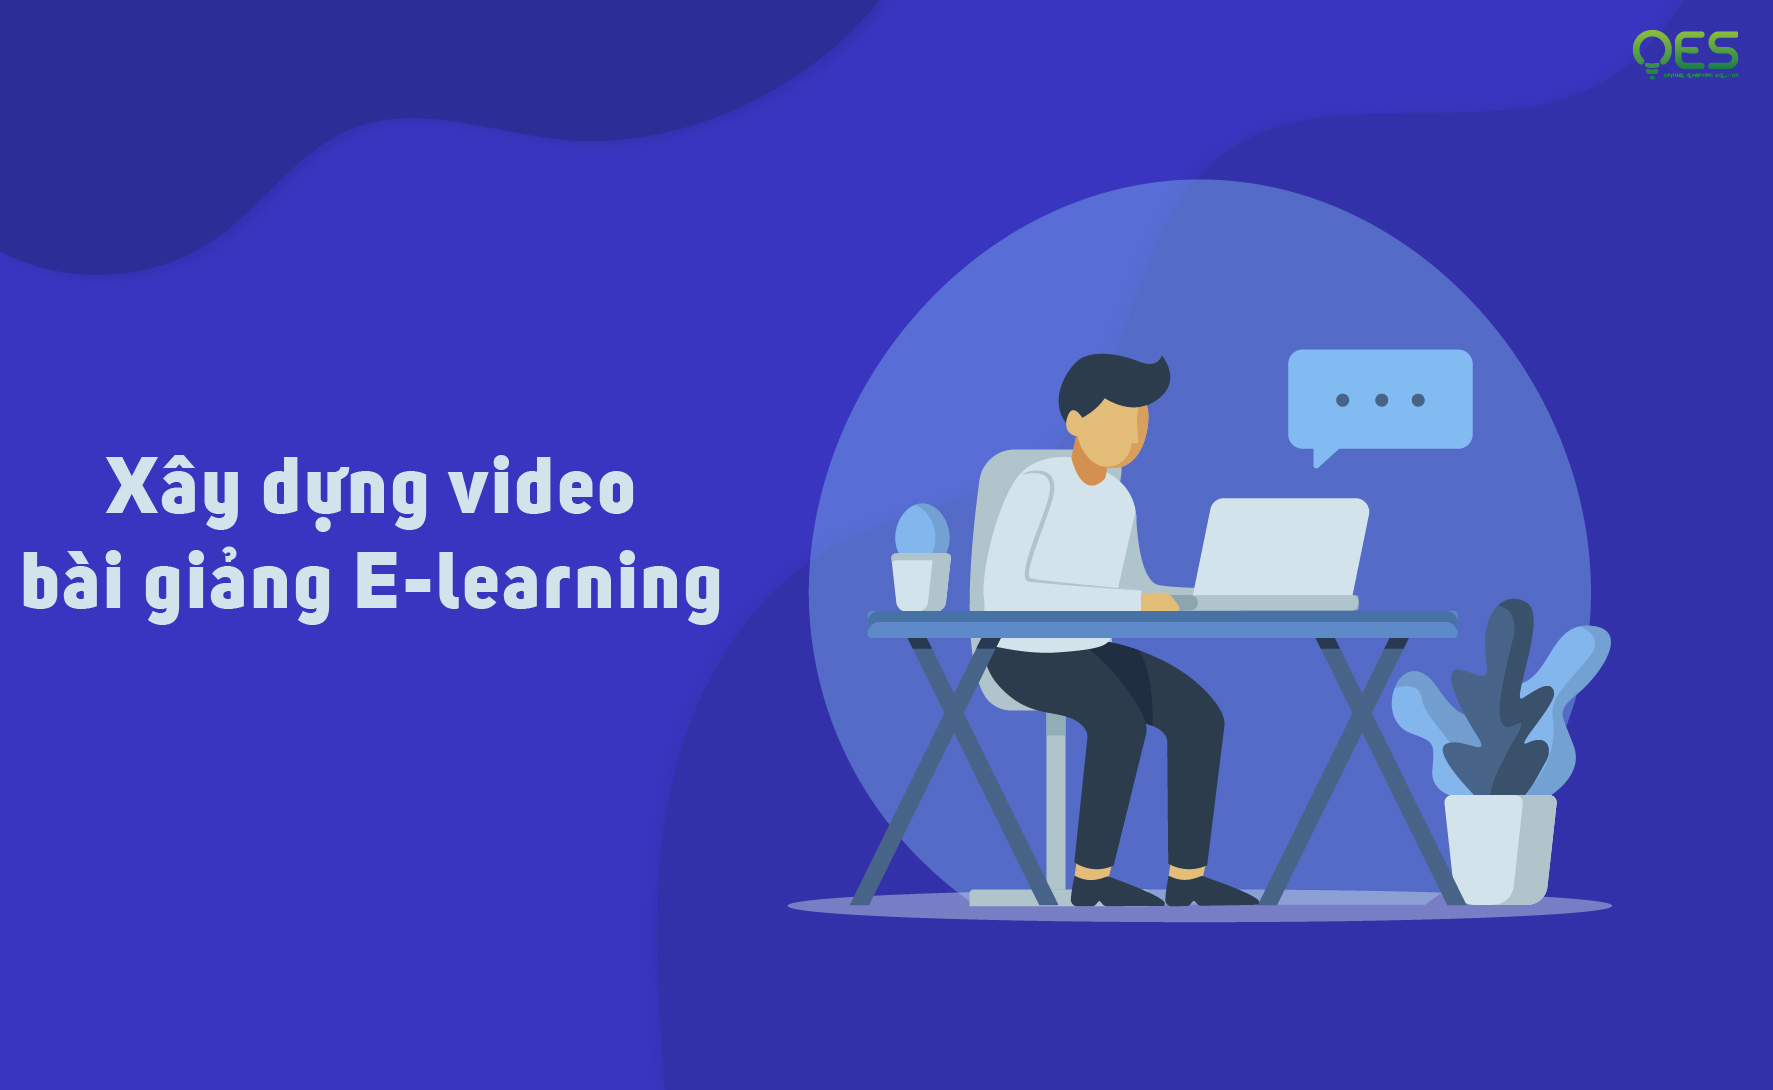 Xây dựng video  bài giảng E-learning